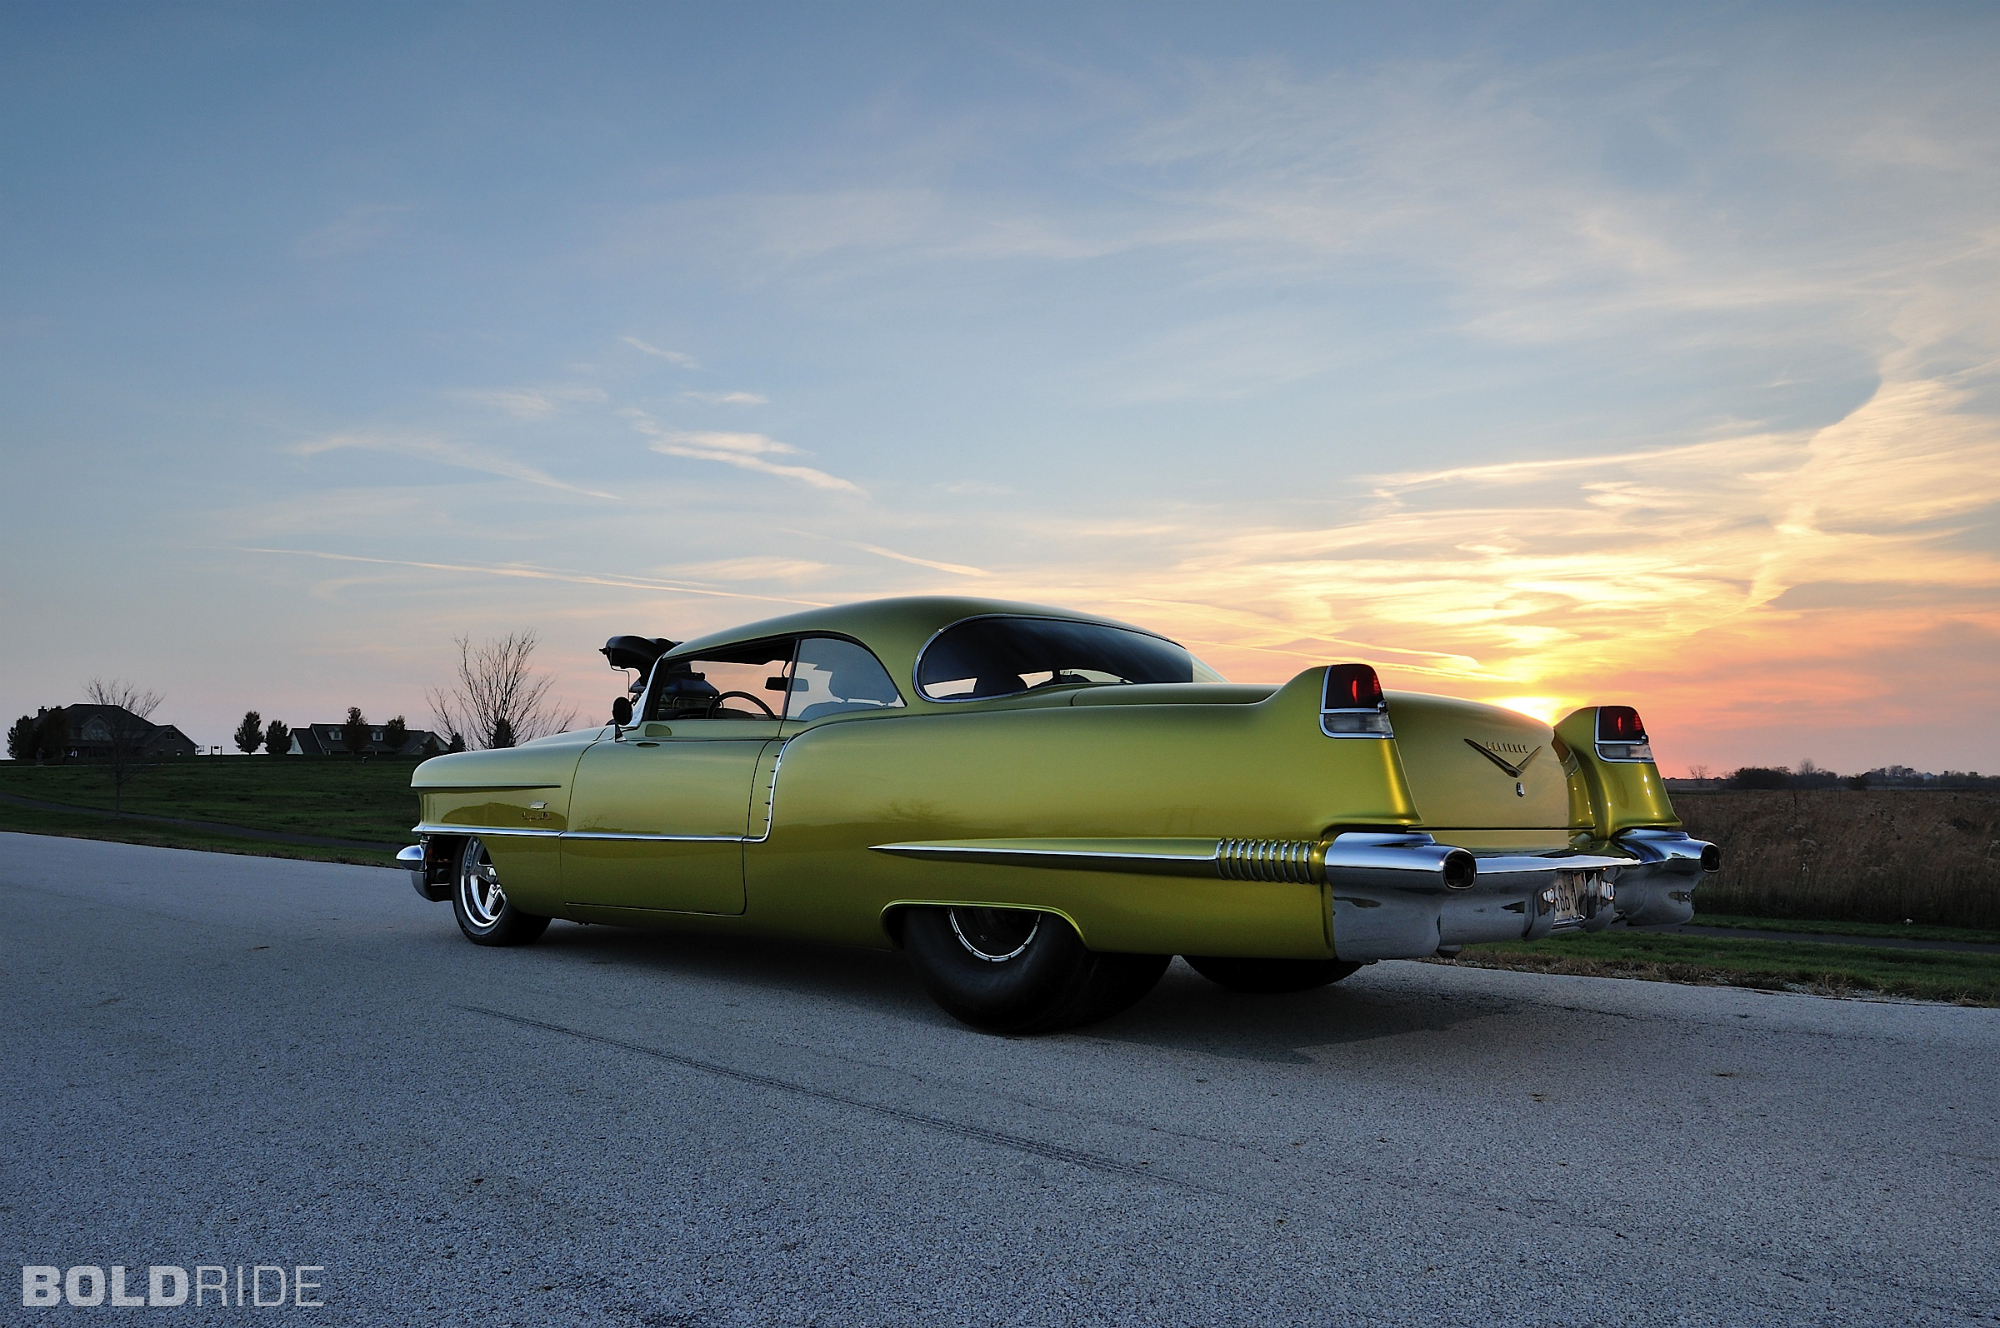 Cadillac Coupe deVille hot rod rods drag race racing retro f wallpaper 2000x1328